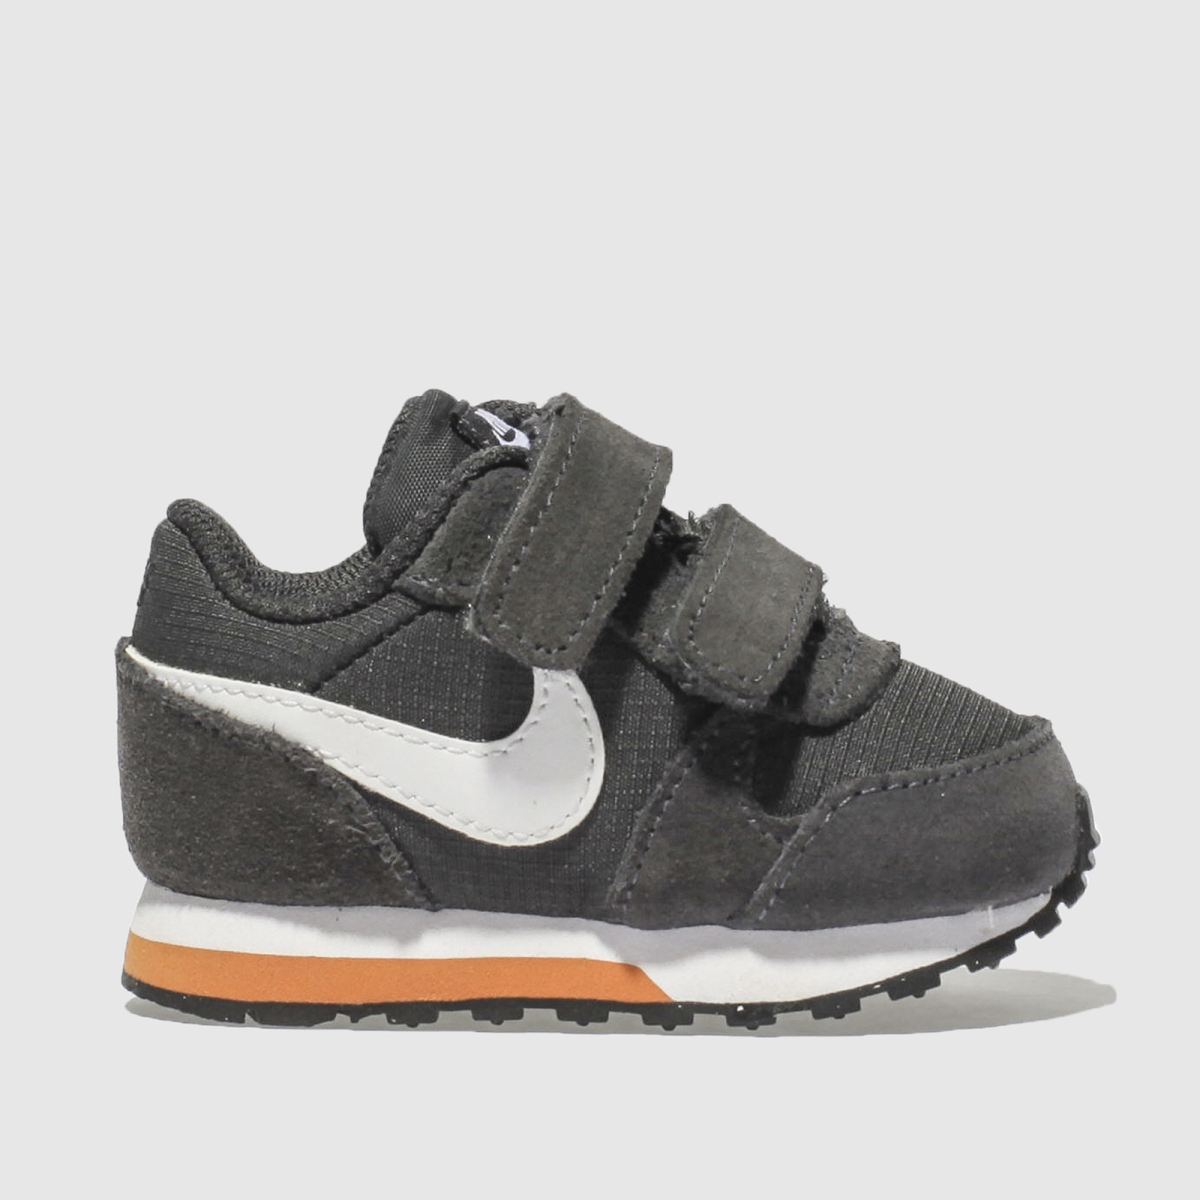 nike dark grey md runner 2 Boys Toddler Trainers